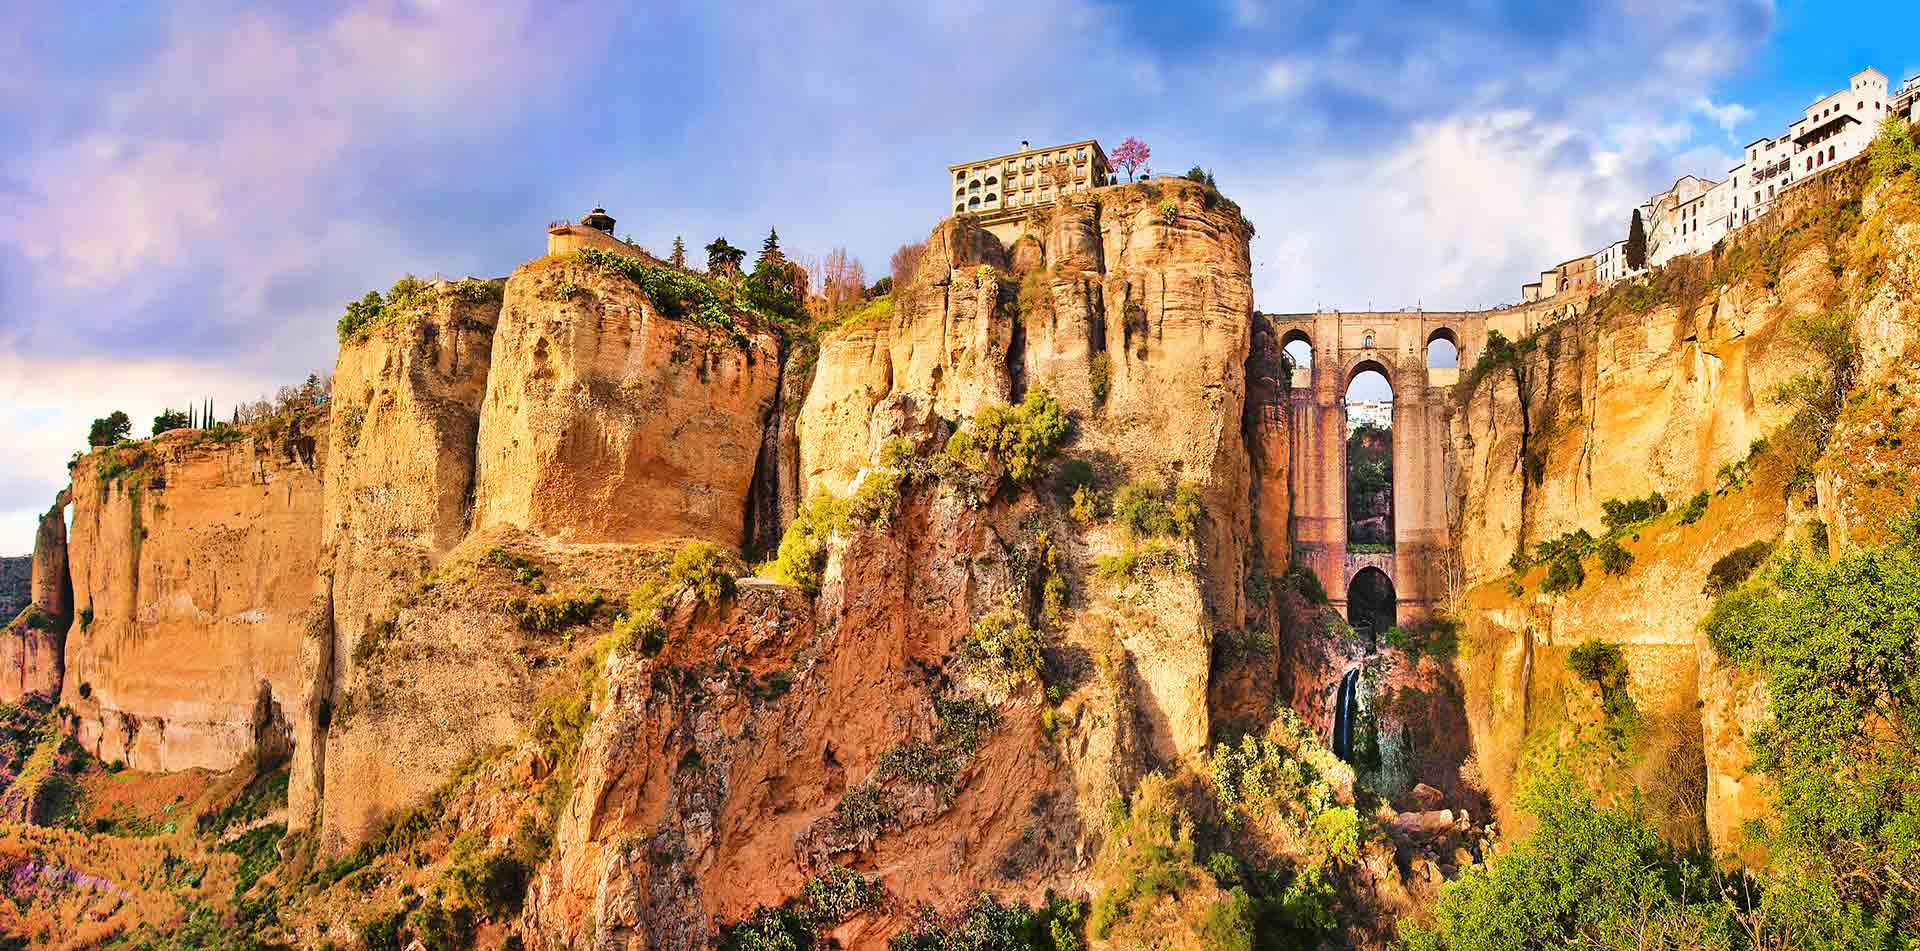 Europe Spain beautiful Mediterranean coast lively culture food countryside old city ronda- luxury vacation destinations